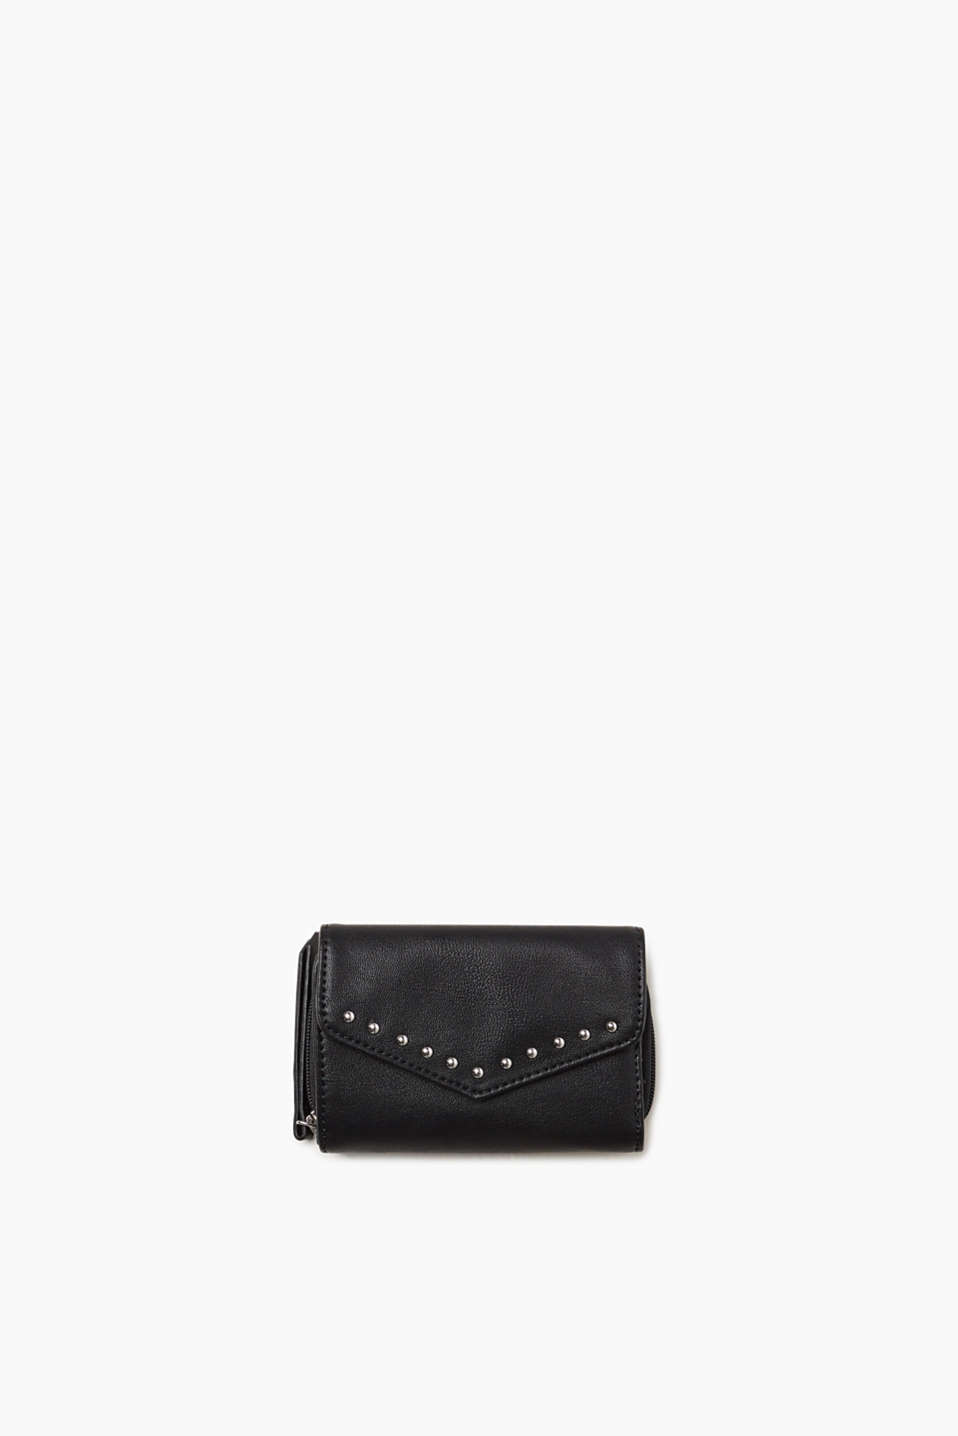 Purse designed in a functional format with rock chick stud decoration for a stylish, eye-catching piece.